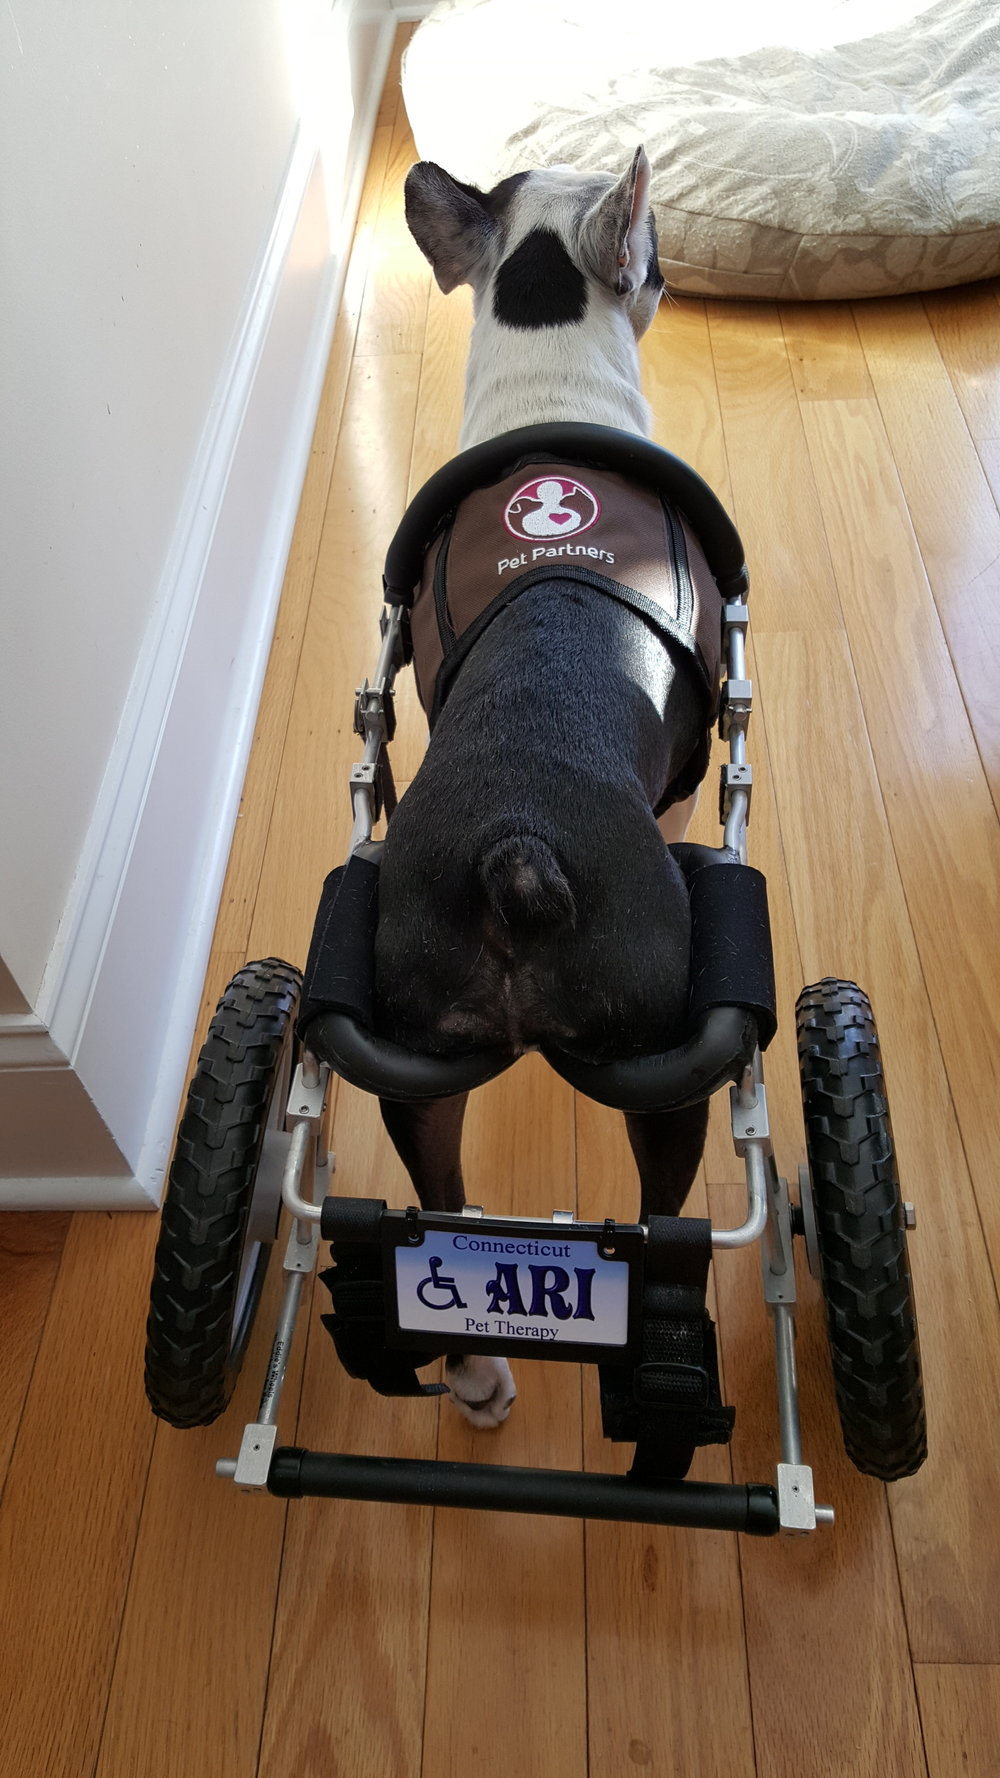 Ari even has a special license plate for his sweet ride